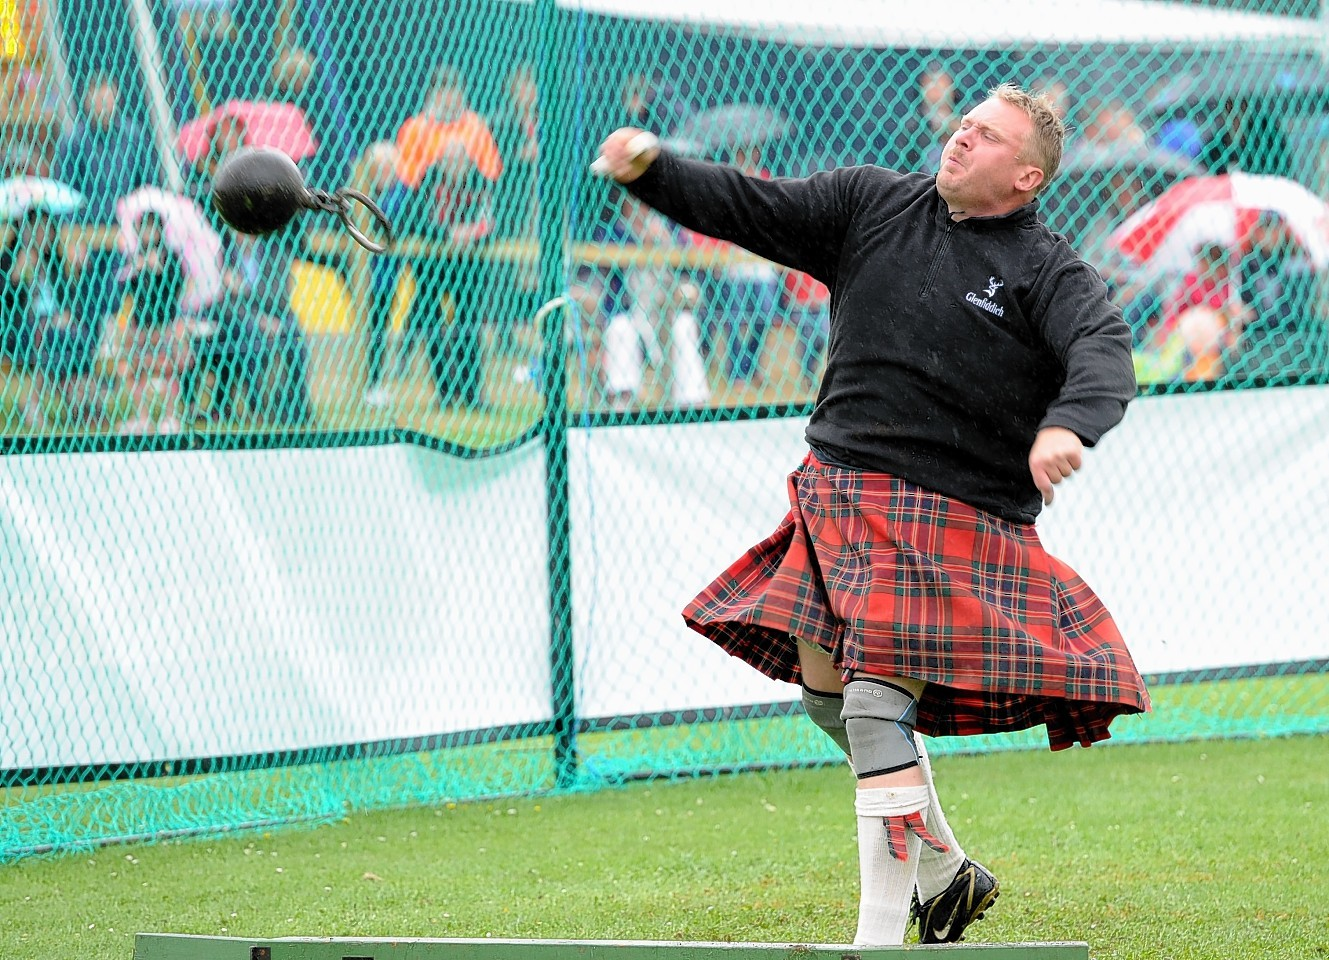 Aboyne Highland Games returns this Saturday, with thousands expected to attend